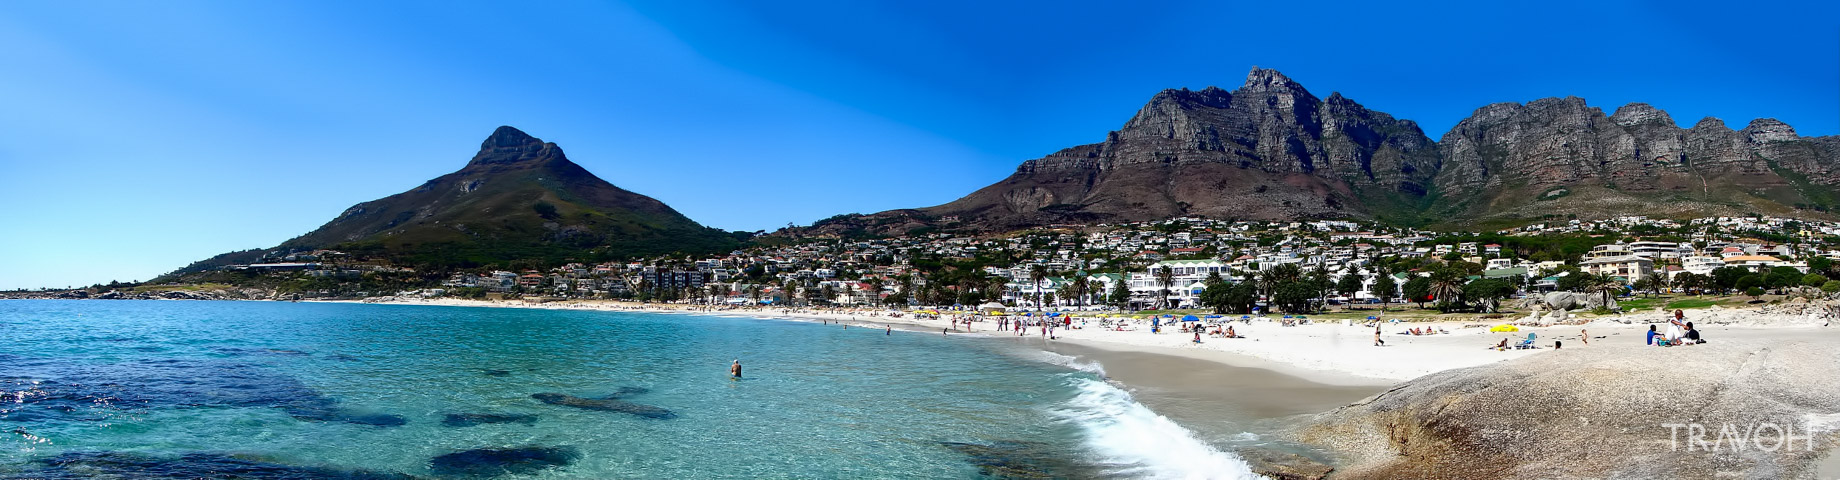 Camps Bay Beach - Exploring 10 of the Top Beaches in Cape Town South Africa